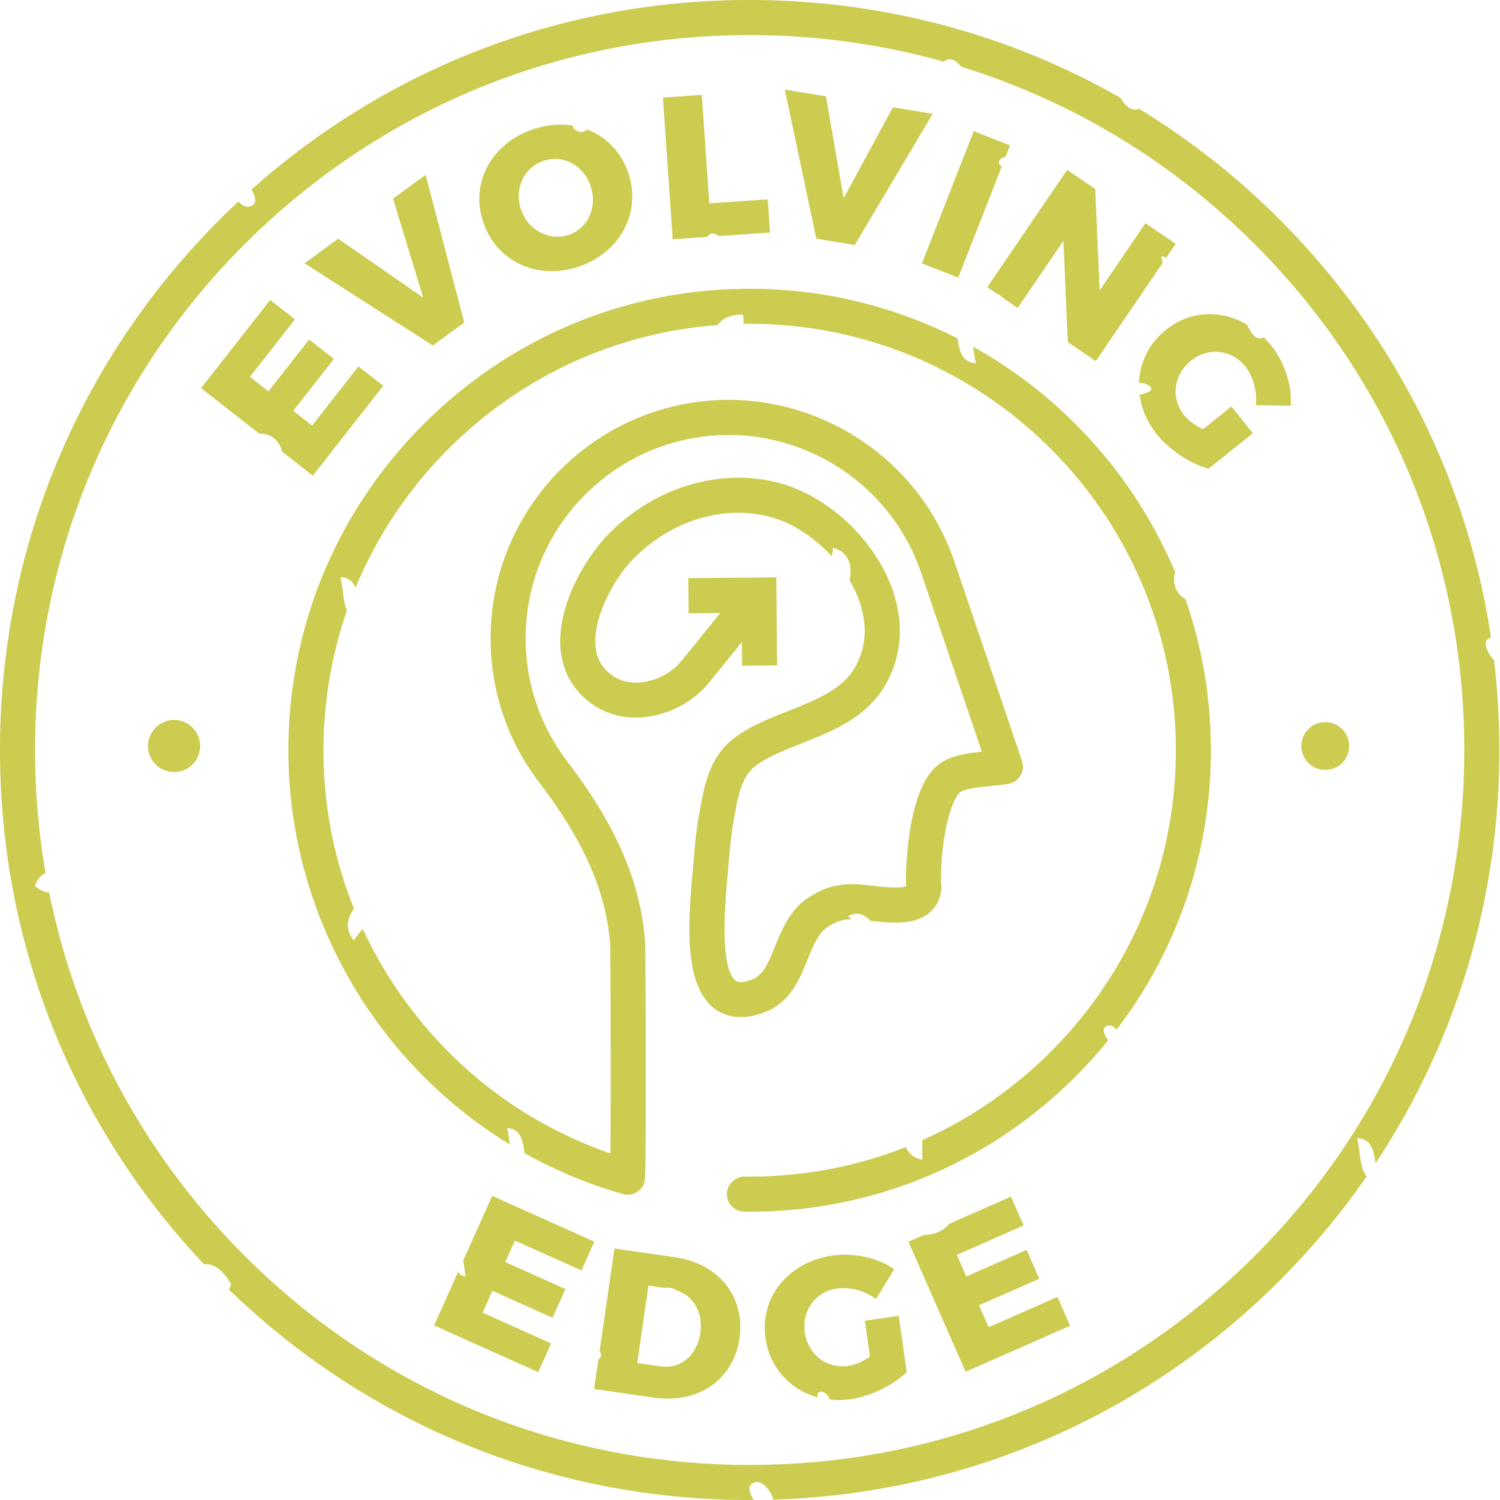 Evolving Edge